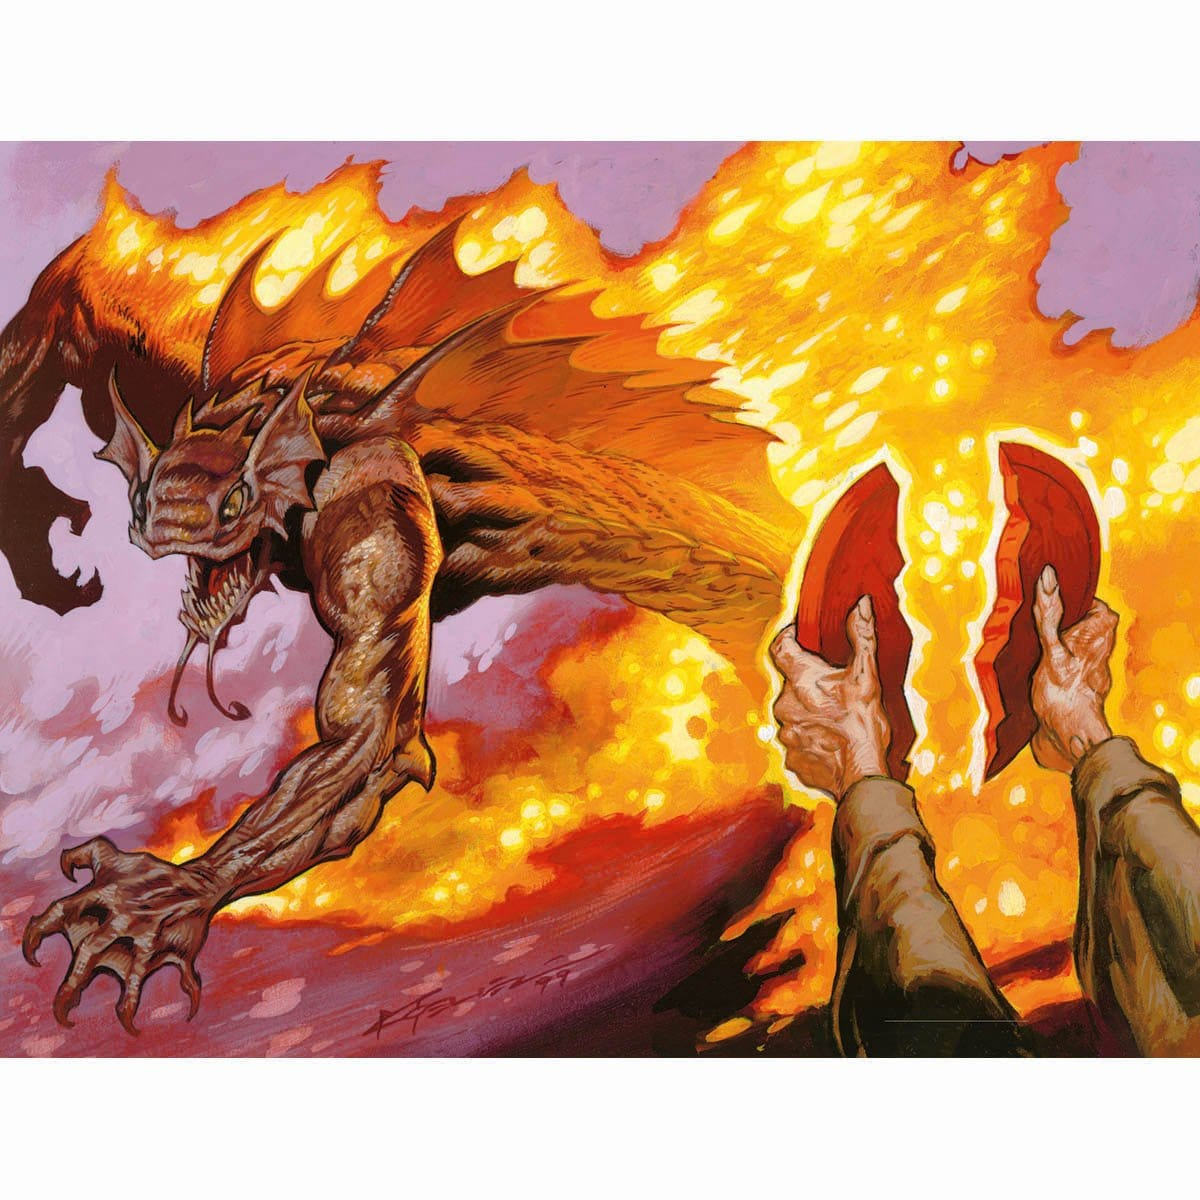 Seal of Fire Print - Print - Original Magic Art - Accessories for Magic the Gathering and other card games